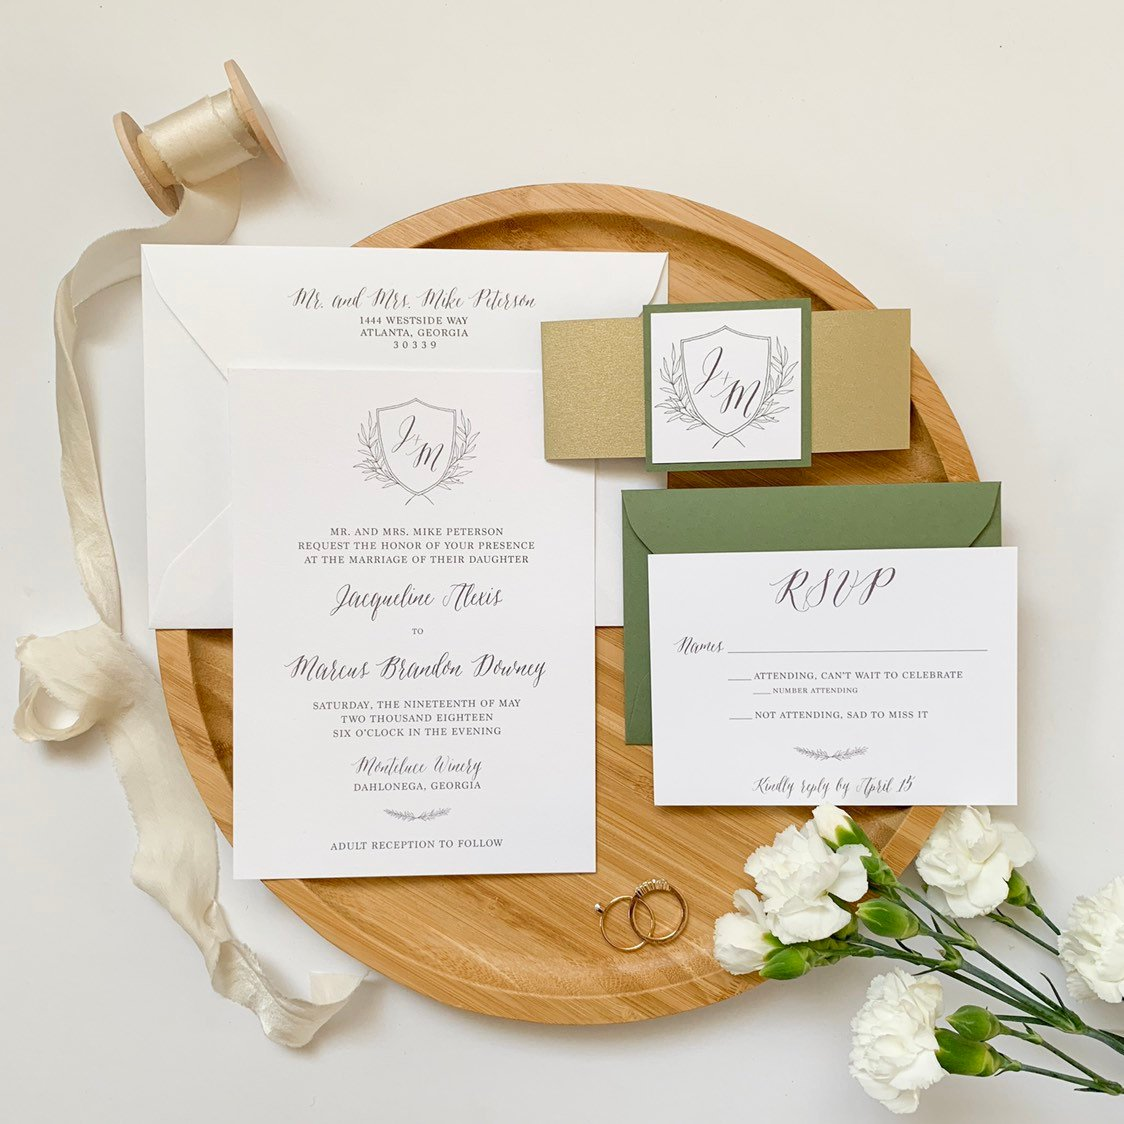 Monogram Wedding Invitation with Belly Band